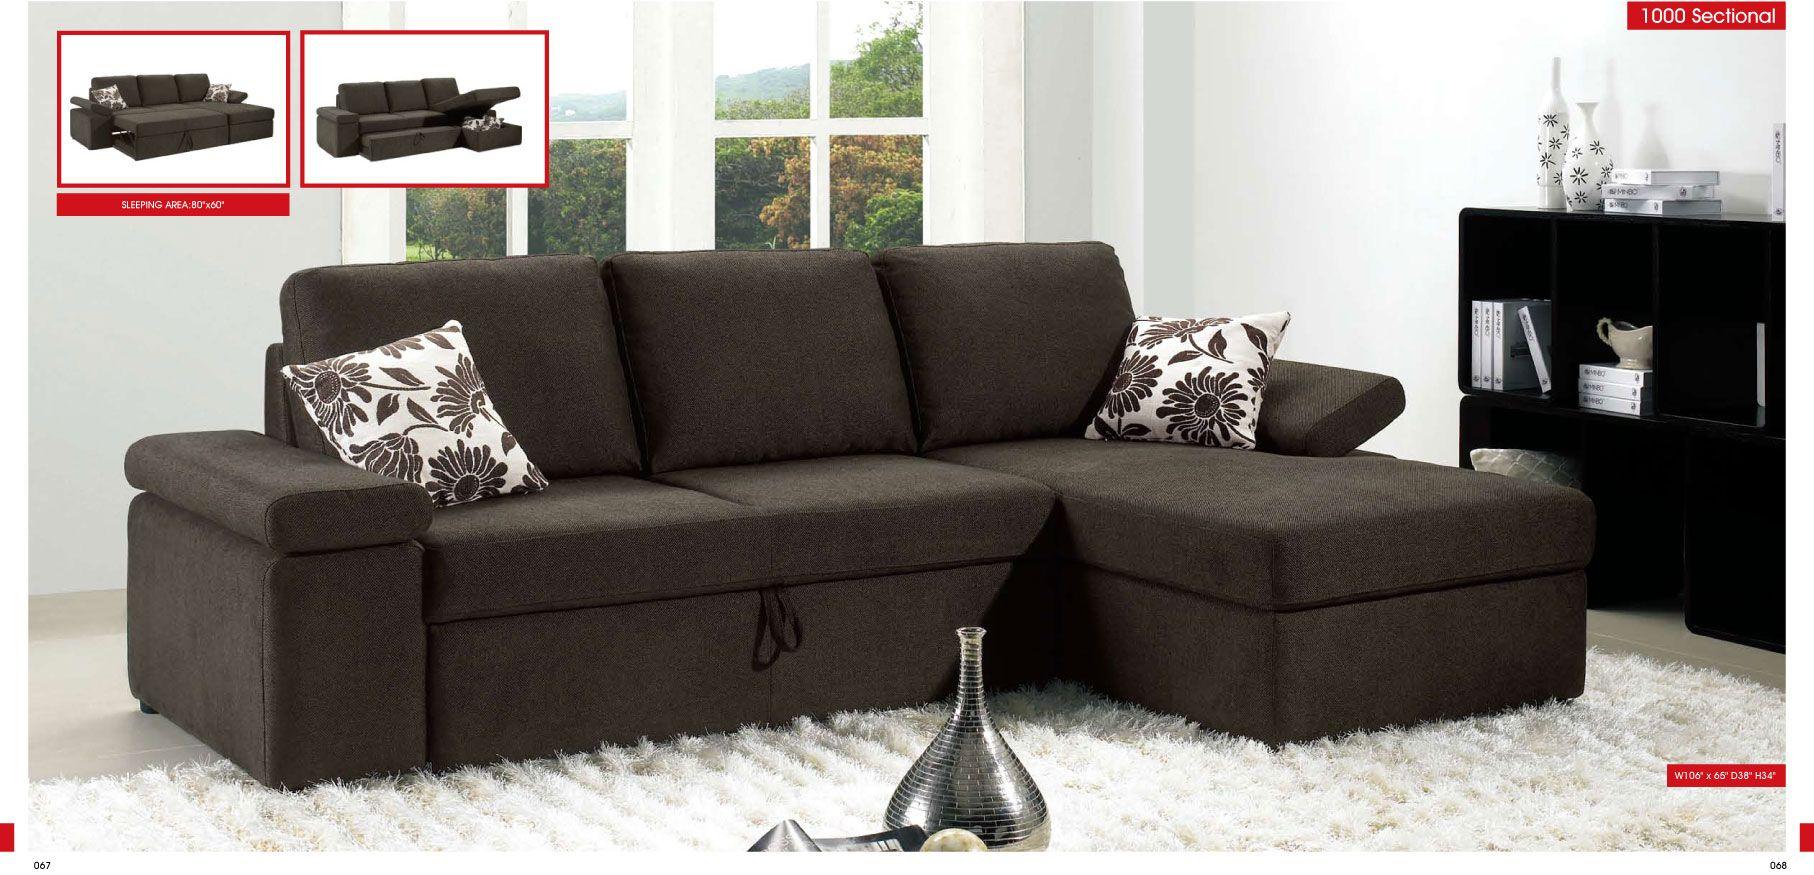 Pull Out Sofa Bed With Storage Esf Sectional Contemporary Bedding